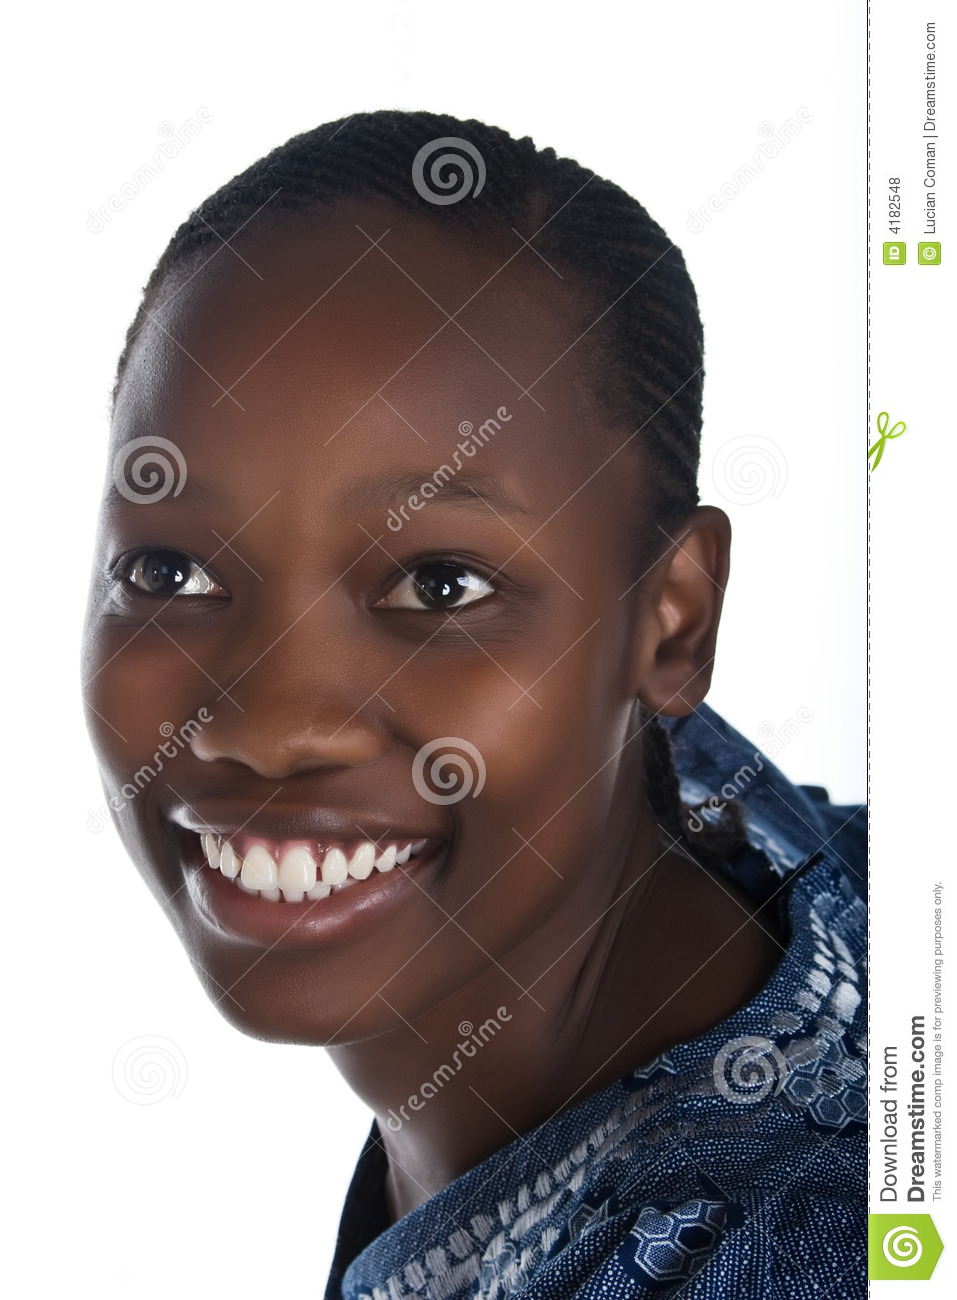 African Woman Royalty Free Stock Photos - Image: 4182548